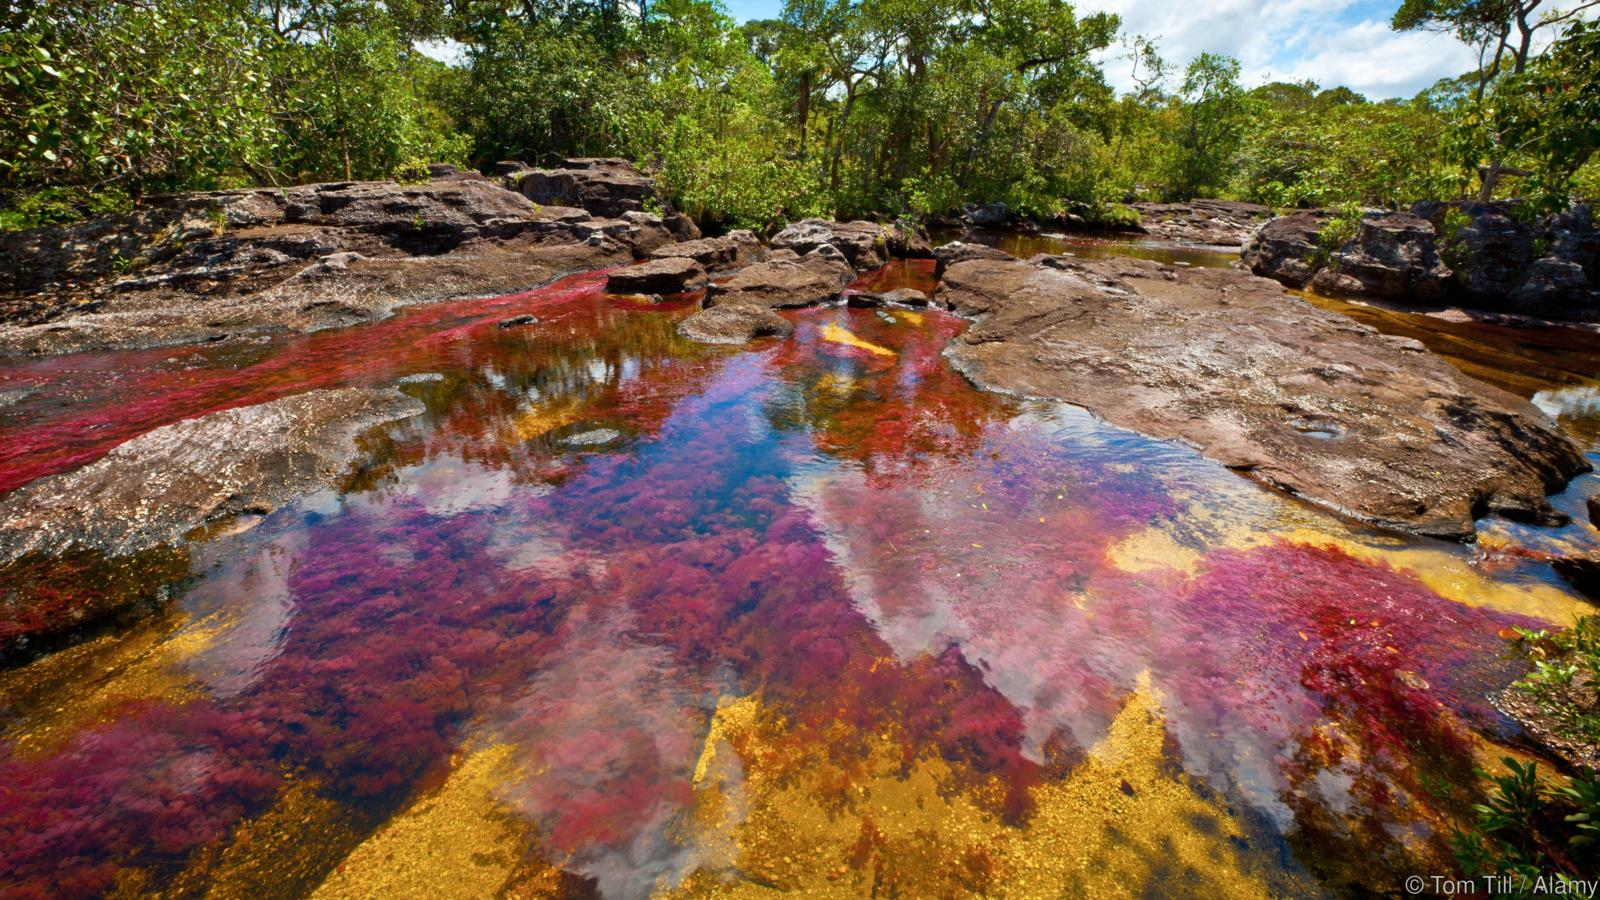 DPWR31 Colors at Cano Cristales, Colombia Underwater plants (Macarenia clarigera) endemic to small stream and area, Llano area